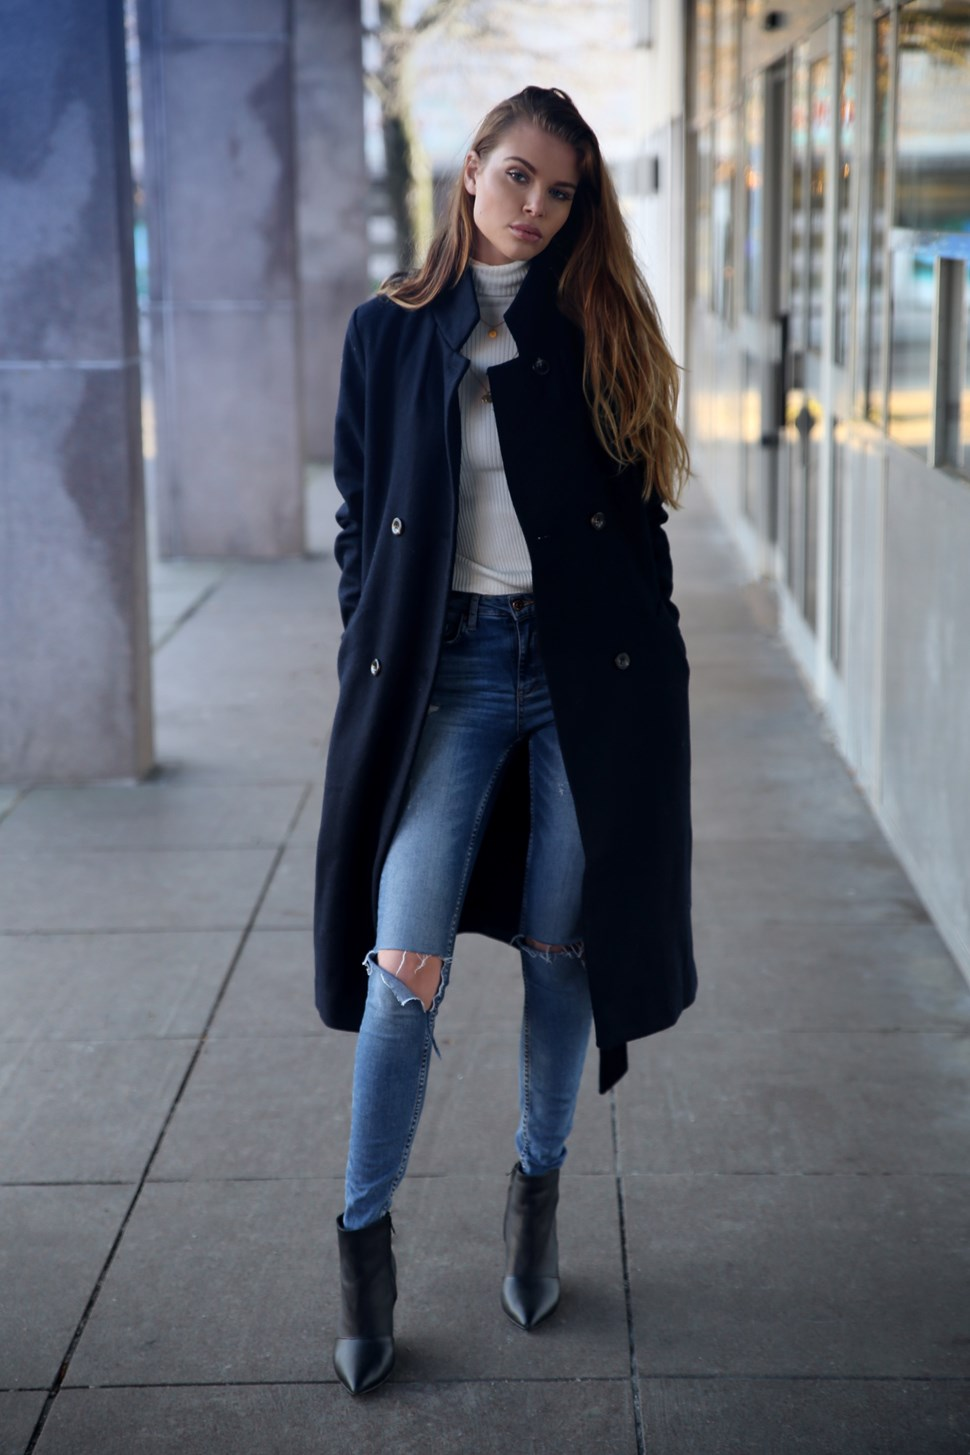 Chelsea boots are the perfect choice for every day winter looks. Josefin Ekström wears this pair with distressed denim jeans, a plain white polo, and an oversized navy overcoat; creating an effortlessly sophisticated style. Coat: Me & The Met. Polo: Chiquelle, Jeans: Gina Tricot, Shoes: Jenniellen.